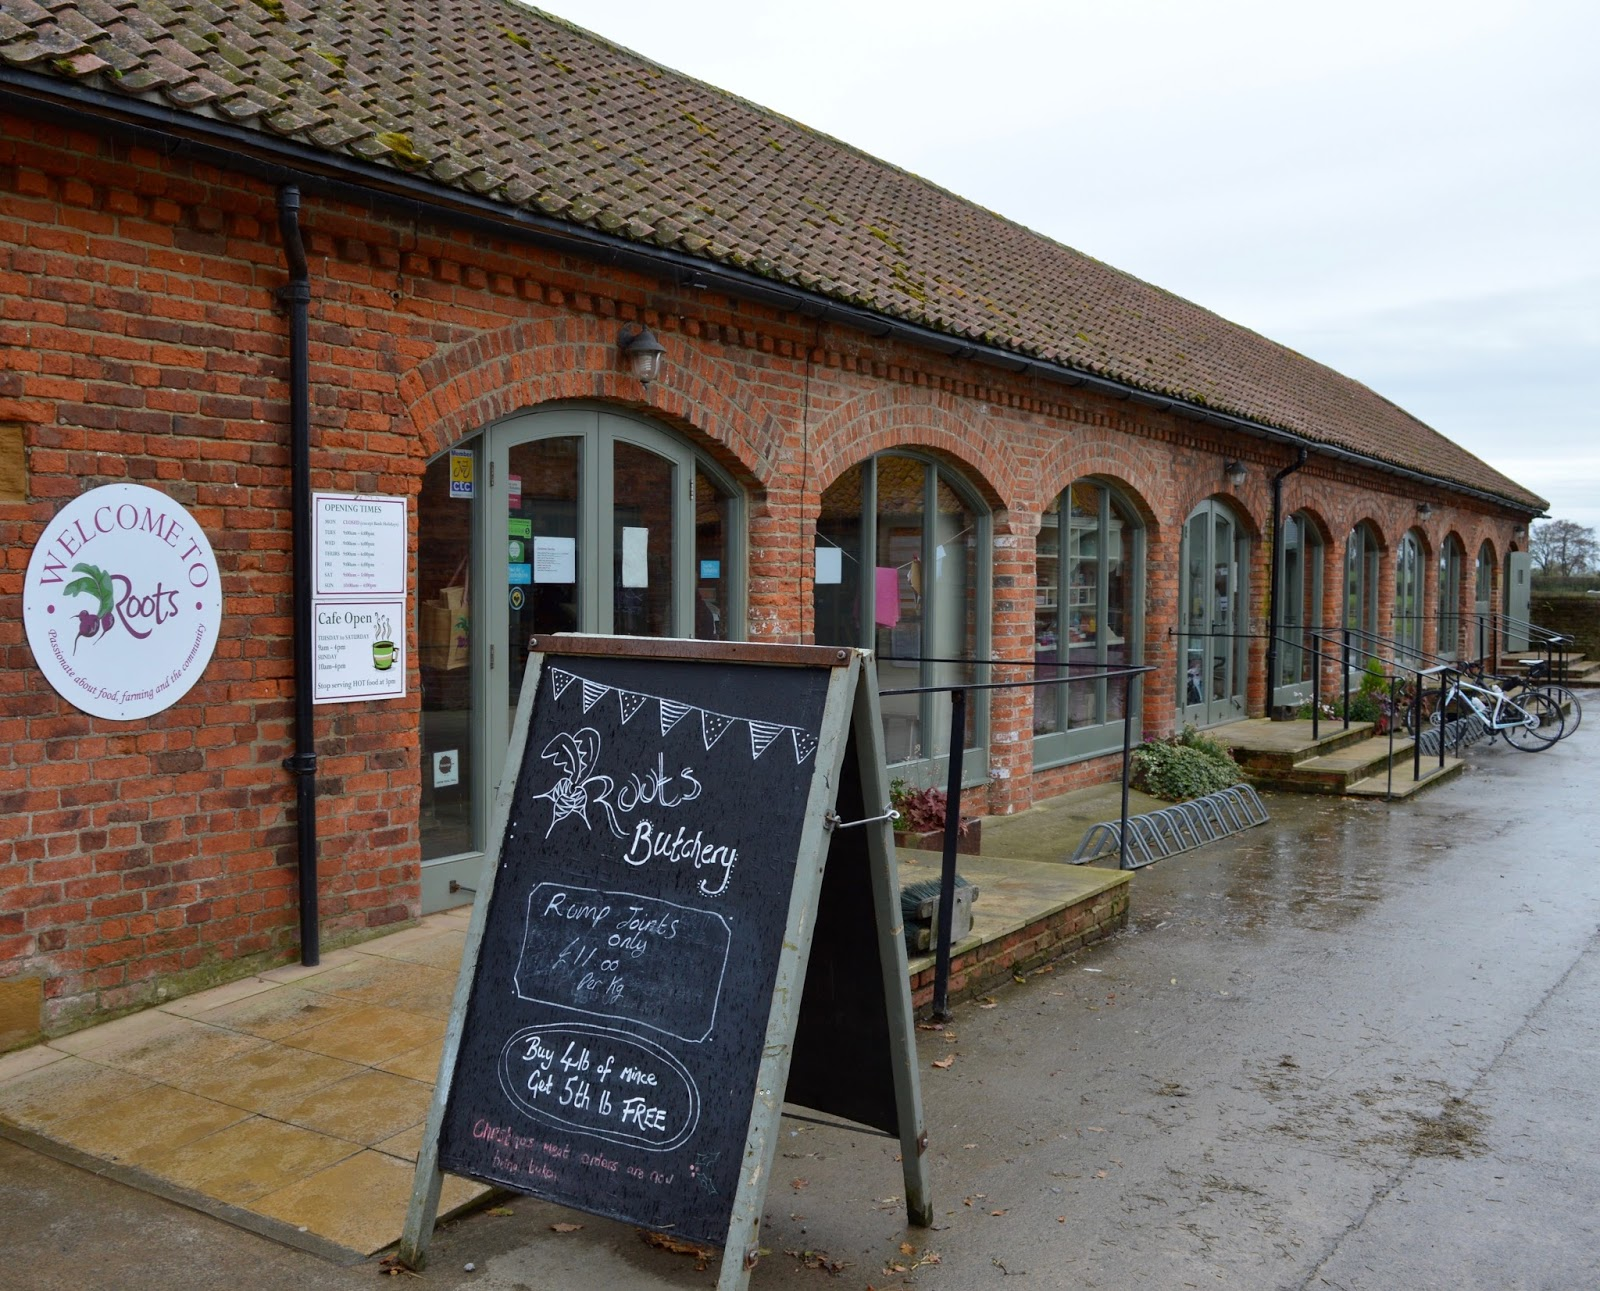 Family Sunday Lunch Menu at Roots Farm Shop & Cafe near Northallerton in North Yorkshire | A Review - exterior shot of farm shop